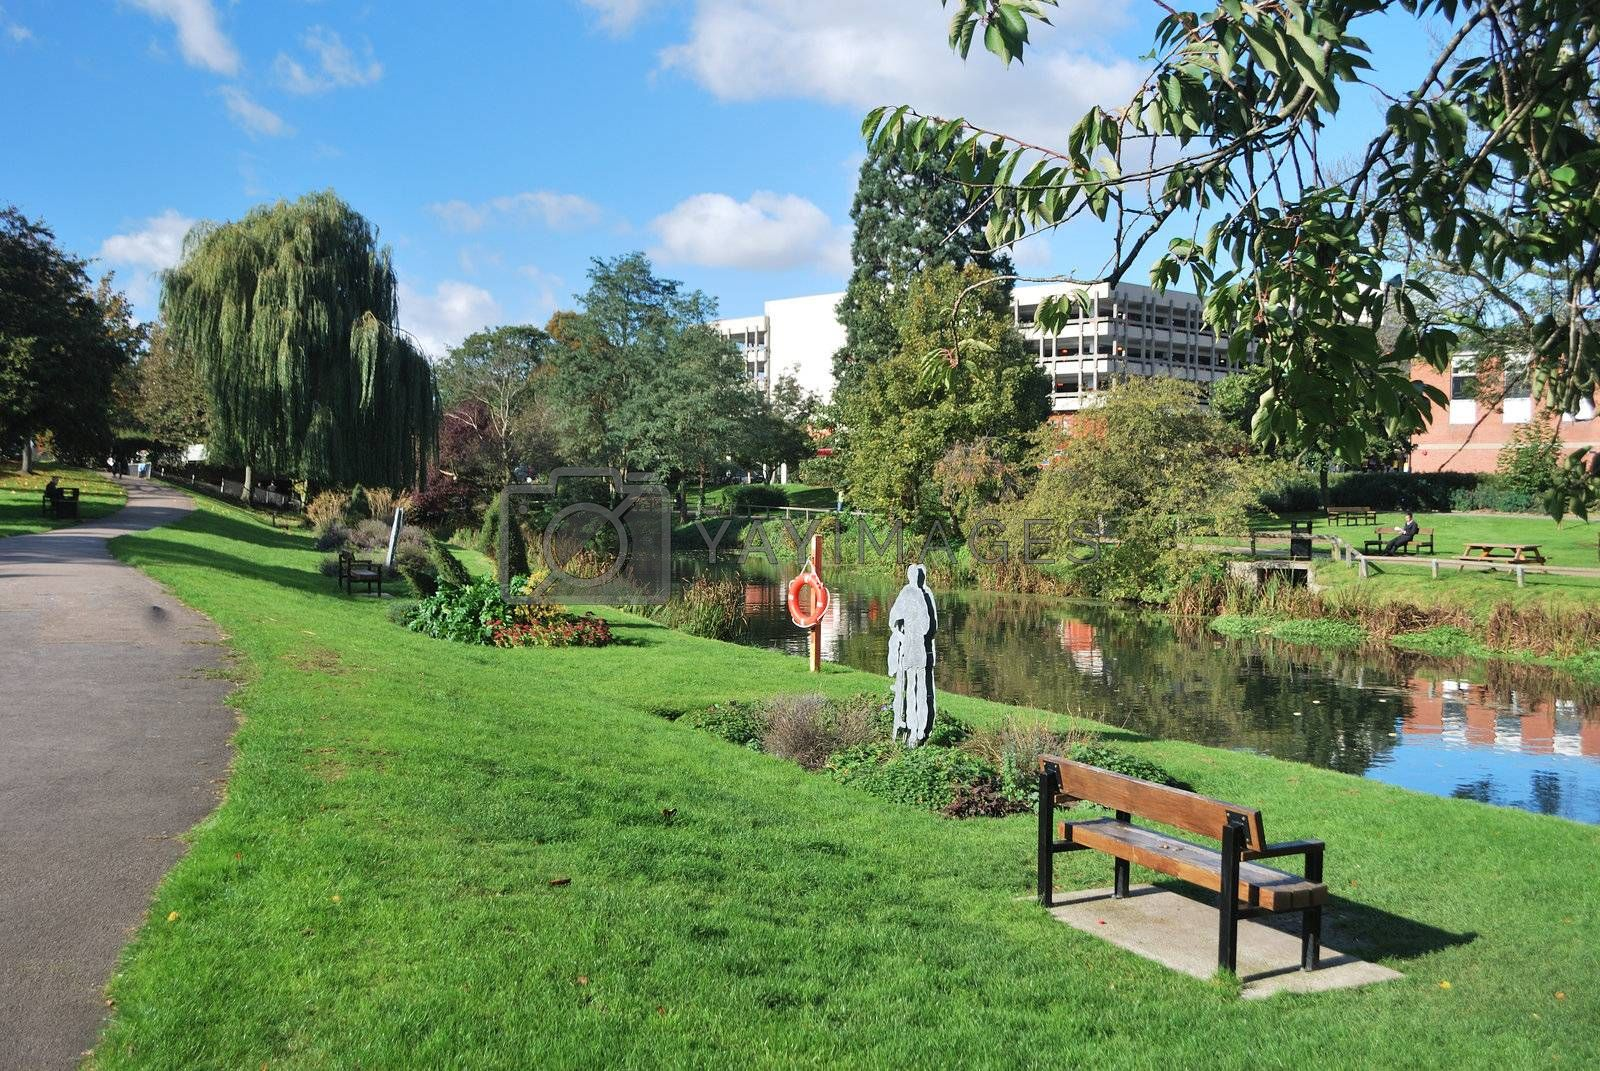 urban park with bench in foreground